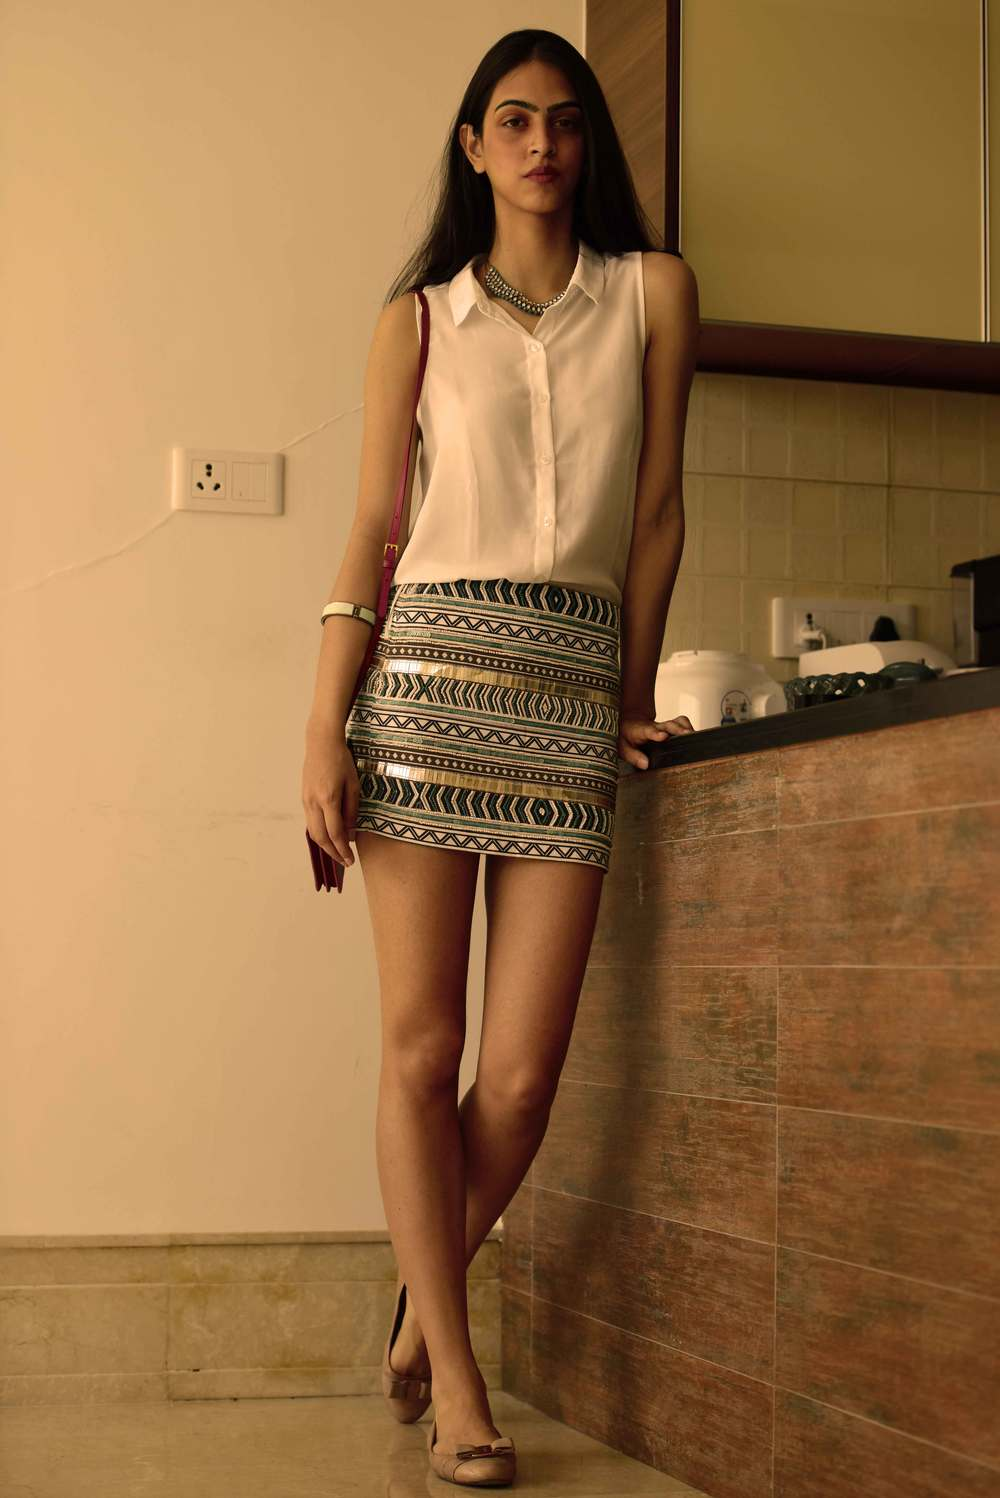 Zara mini-skirt, Prada bag and Ferragamo ballet flats. Image©gunjanvirk, Model: Mannat Dhaliwal